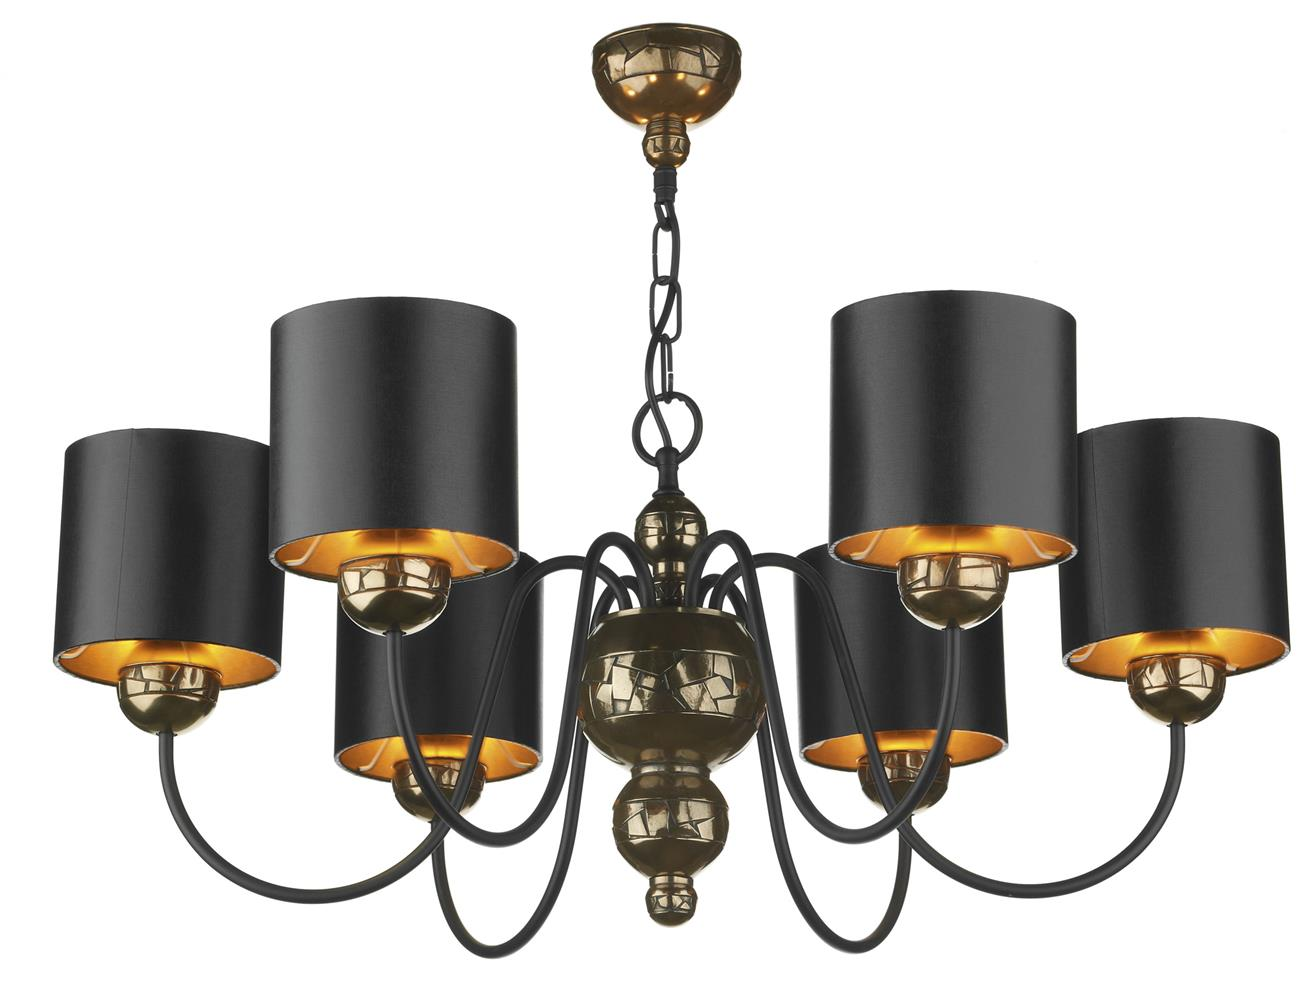 David Hunt Lighting GAR0673 Garbo 6 Light Pendant in Bronze Complete with Black/BronzeShades